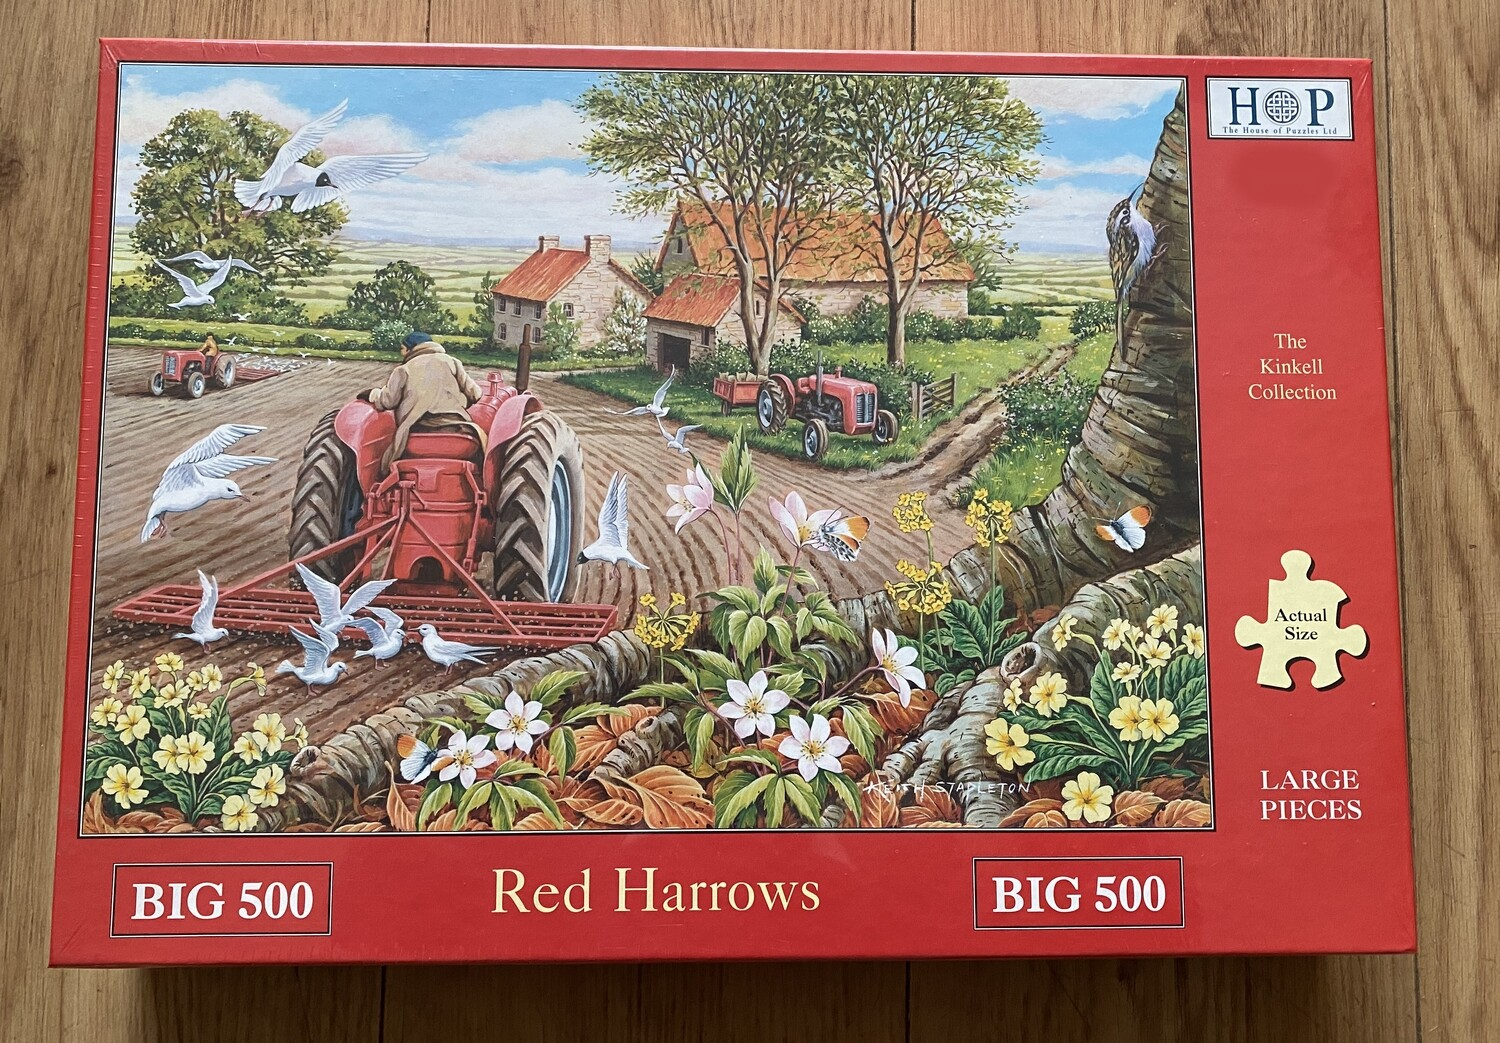 Red Harrows